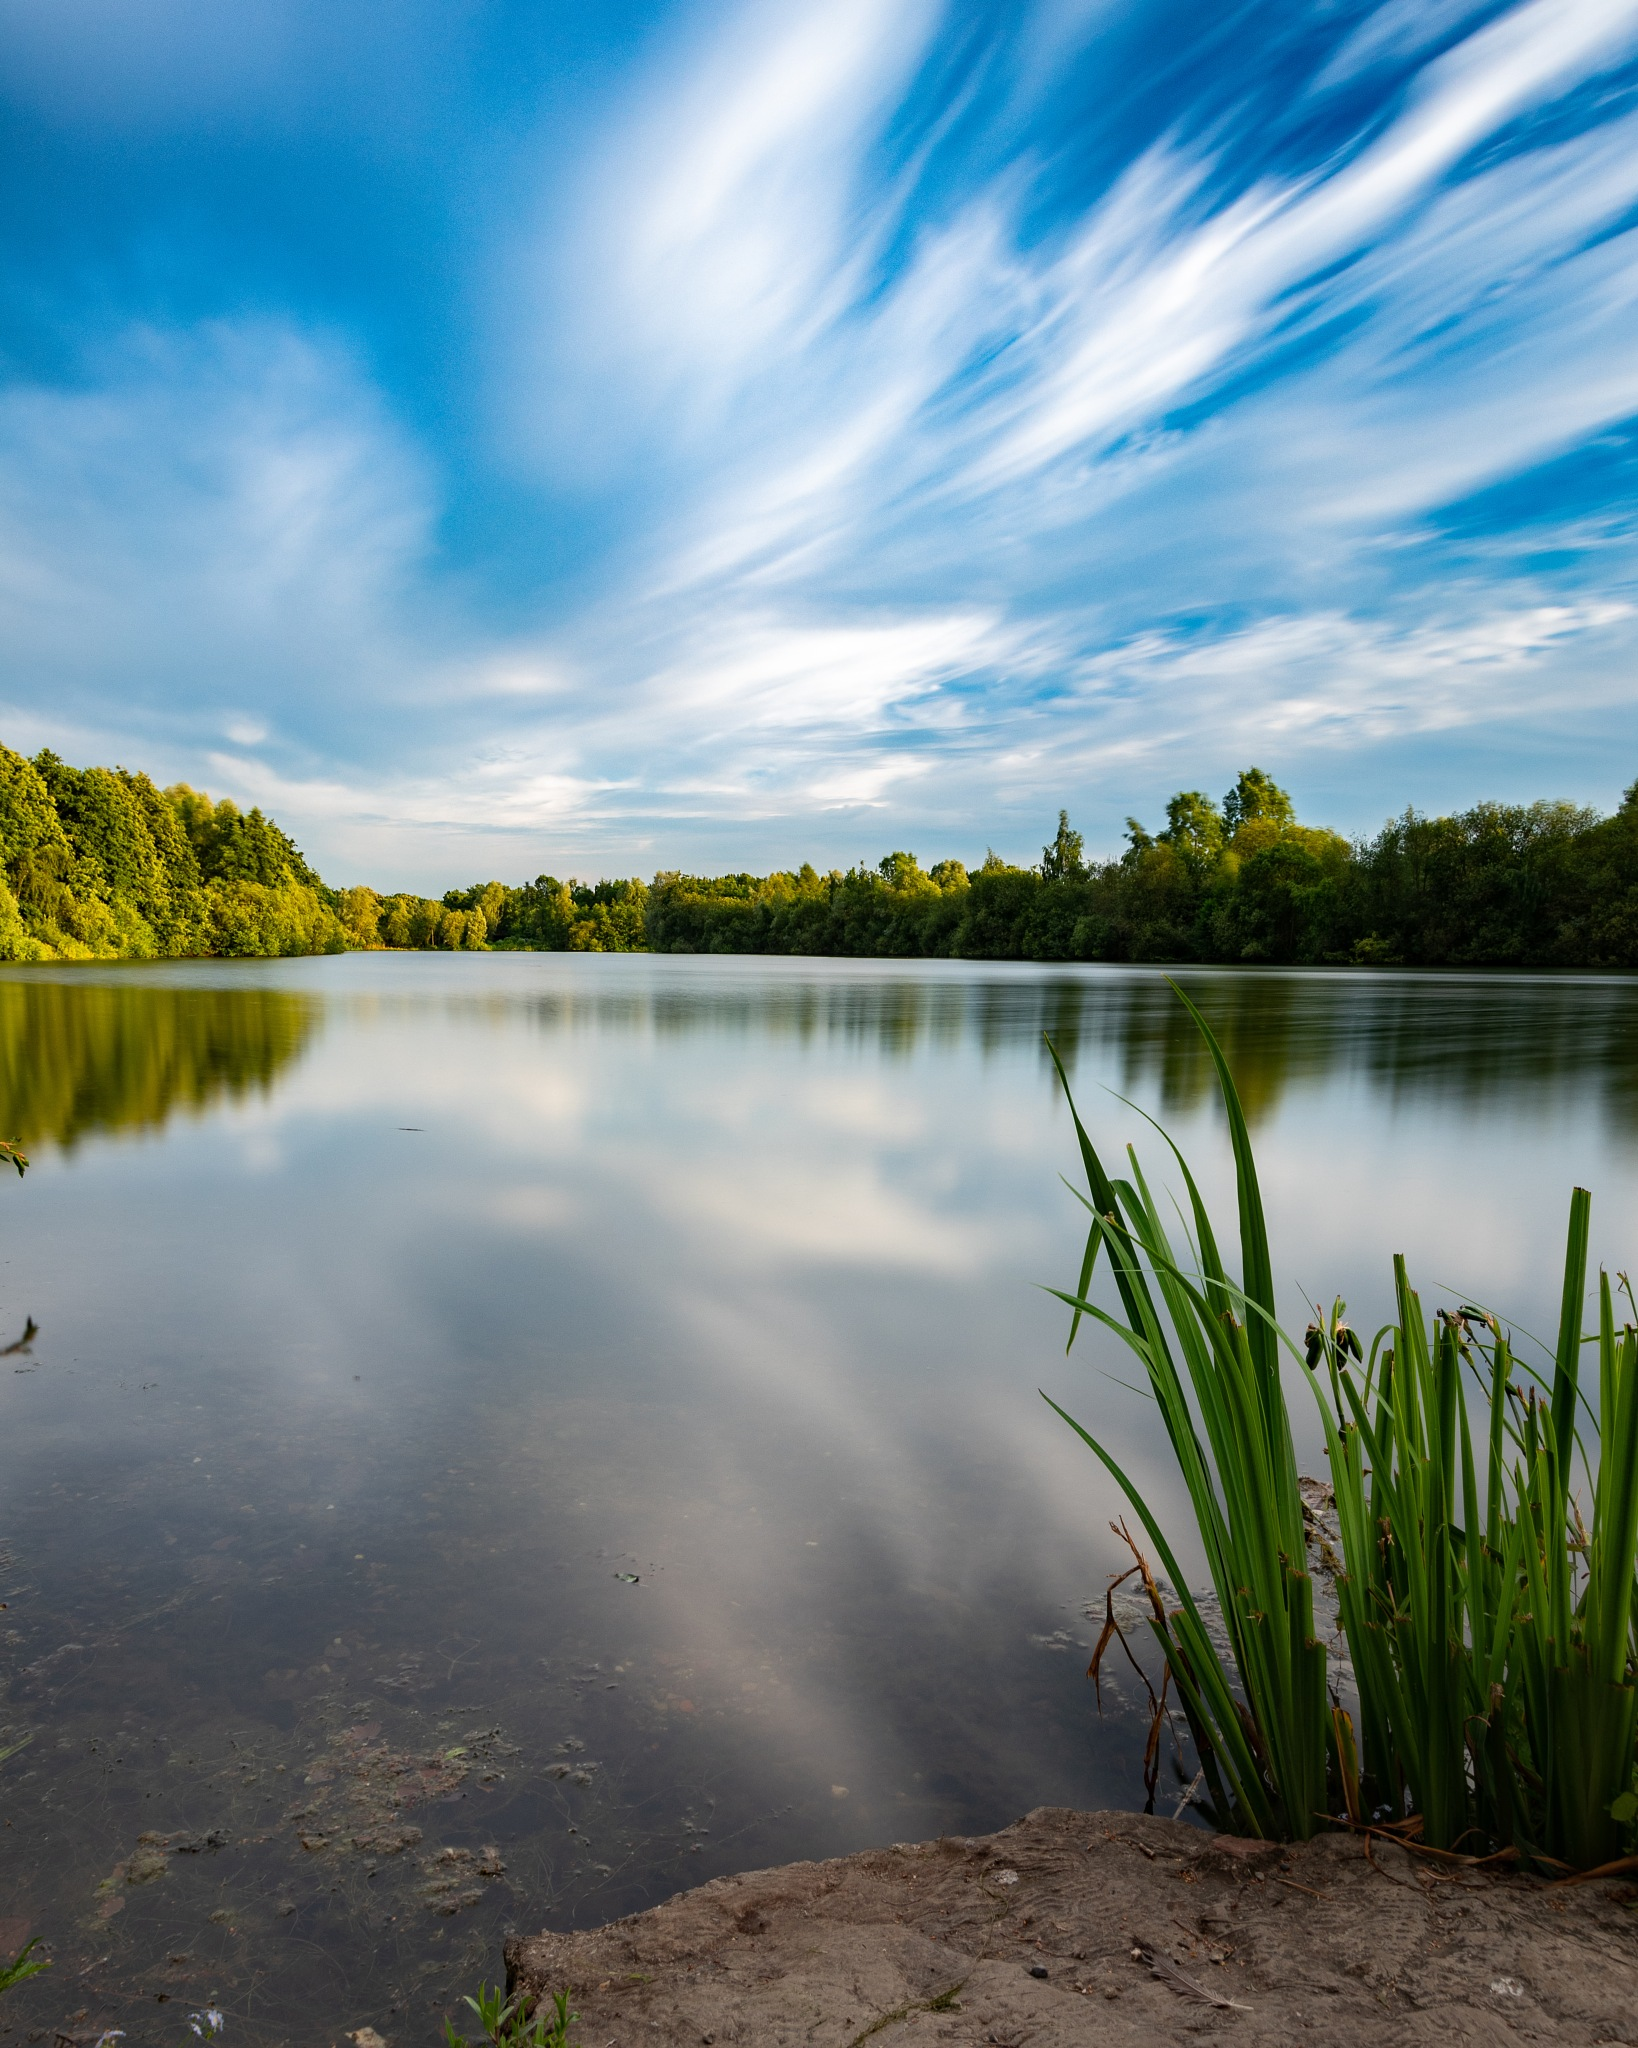 the lake by Thierry Royls